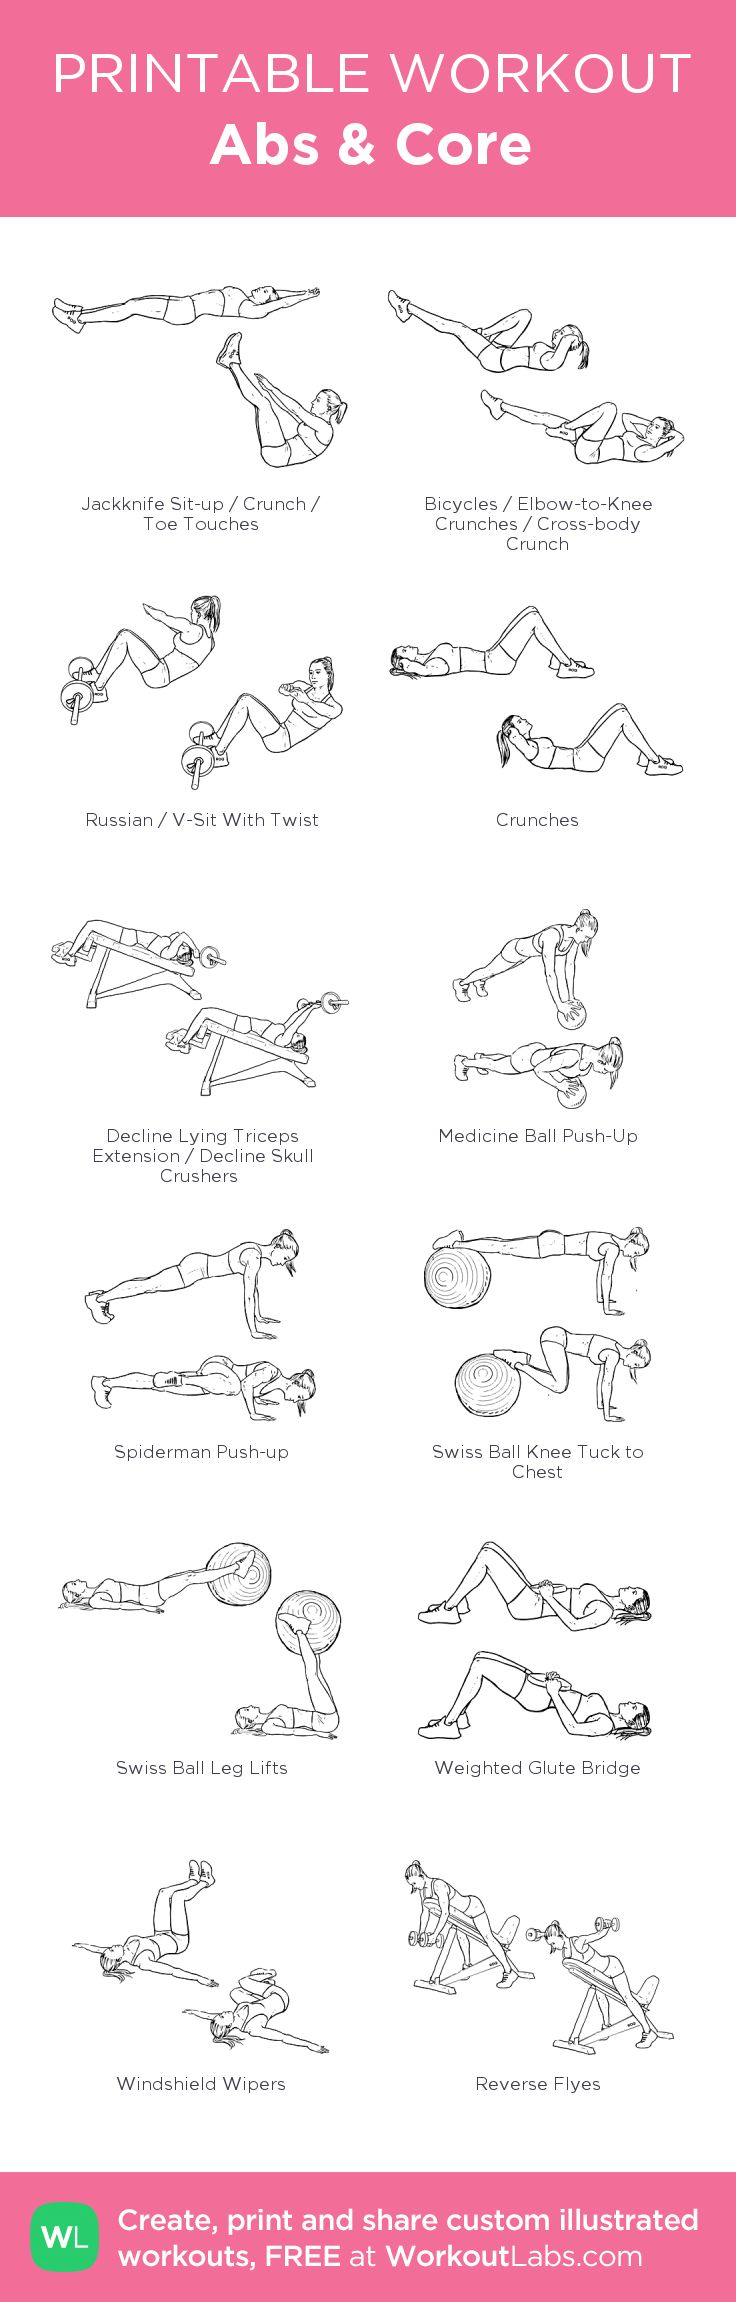 Abs & Core:Combination of Victoria's Secret workout and my own